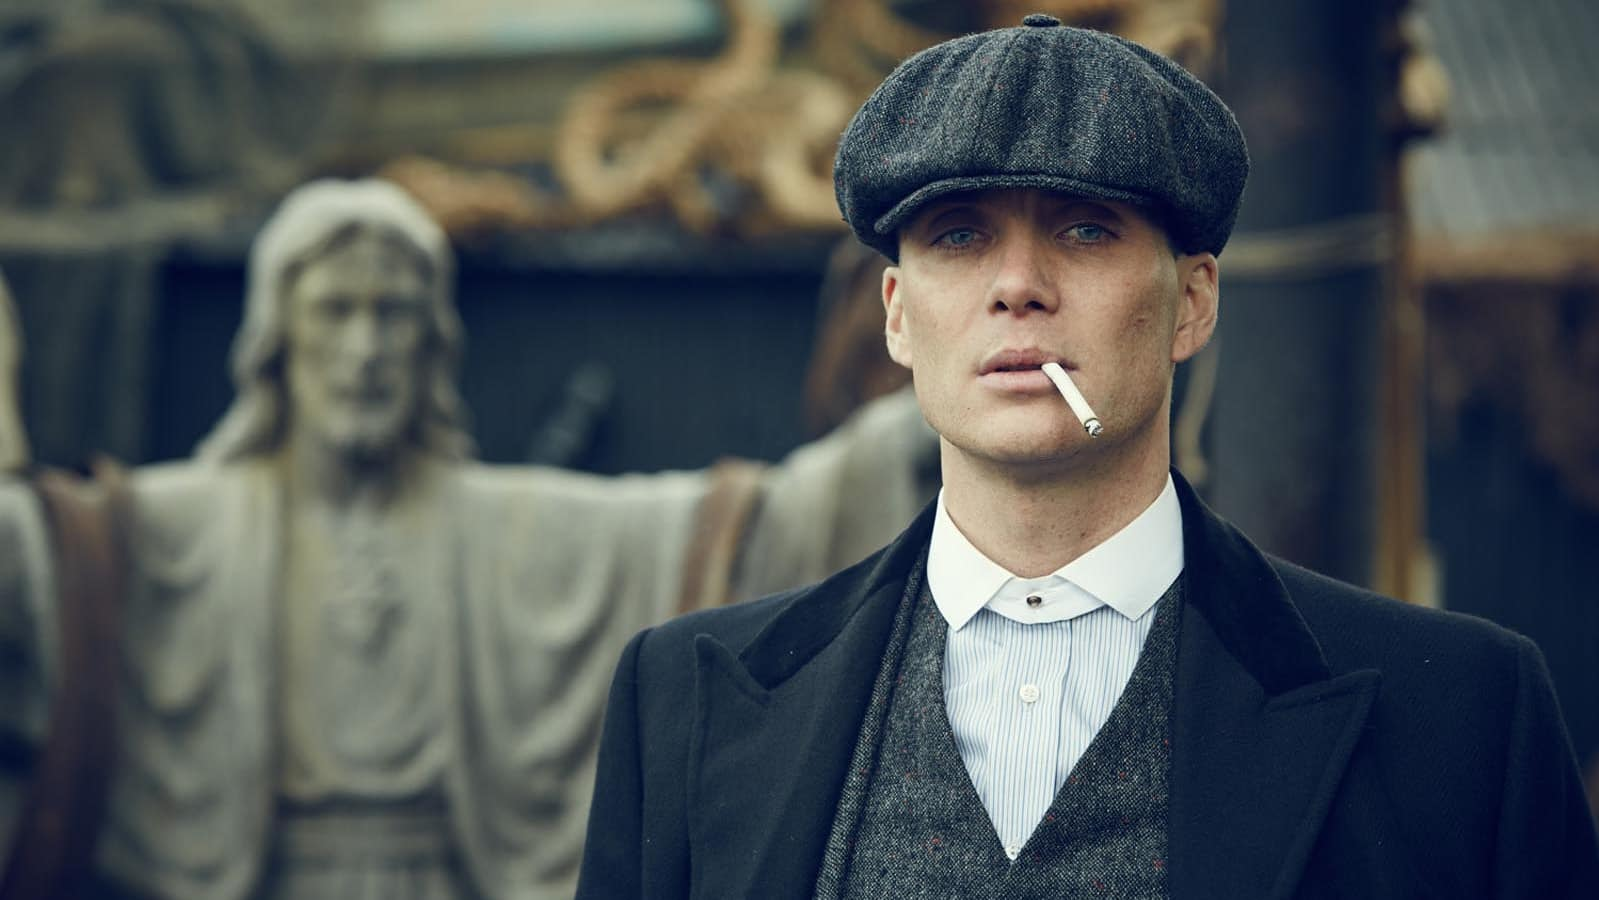 Cillian Murphy wearing a flat cap in Peaky Blinders